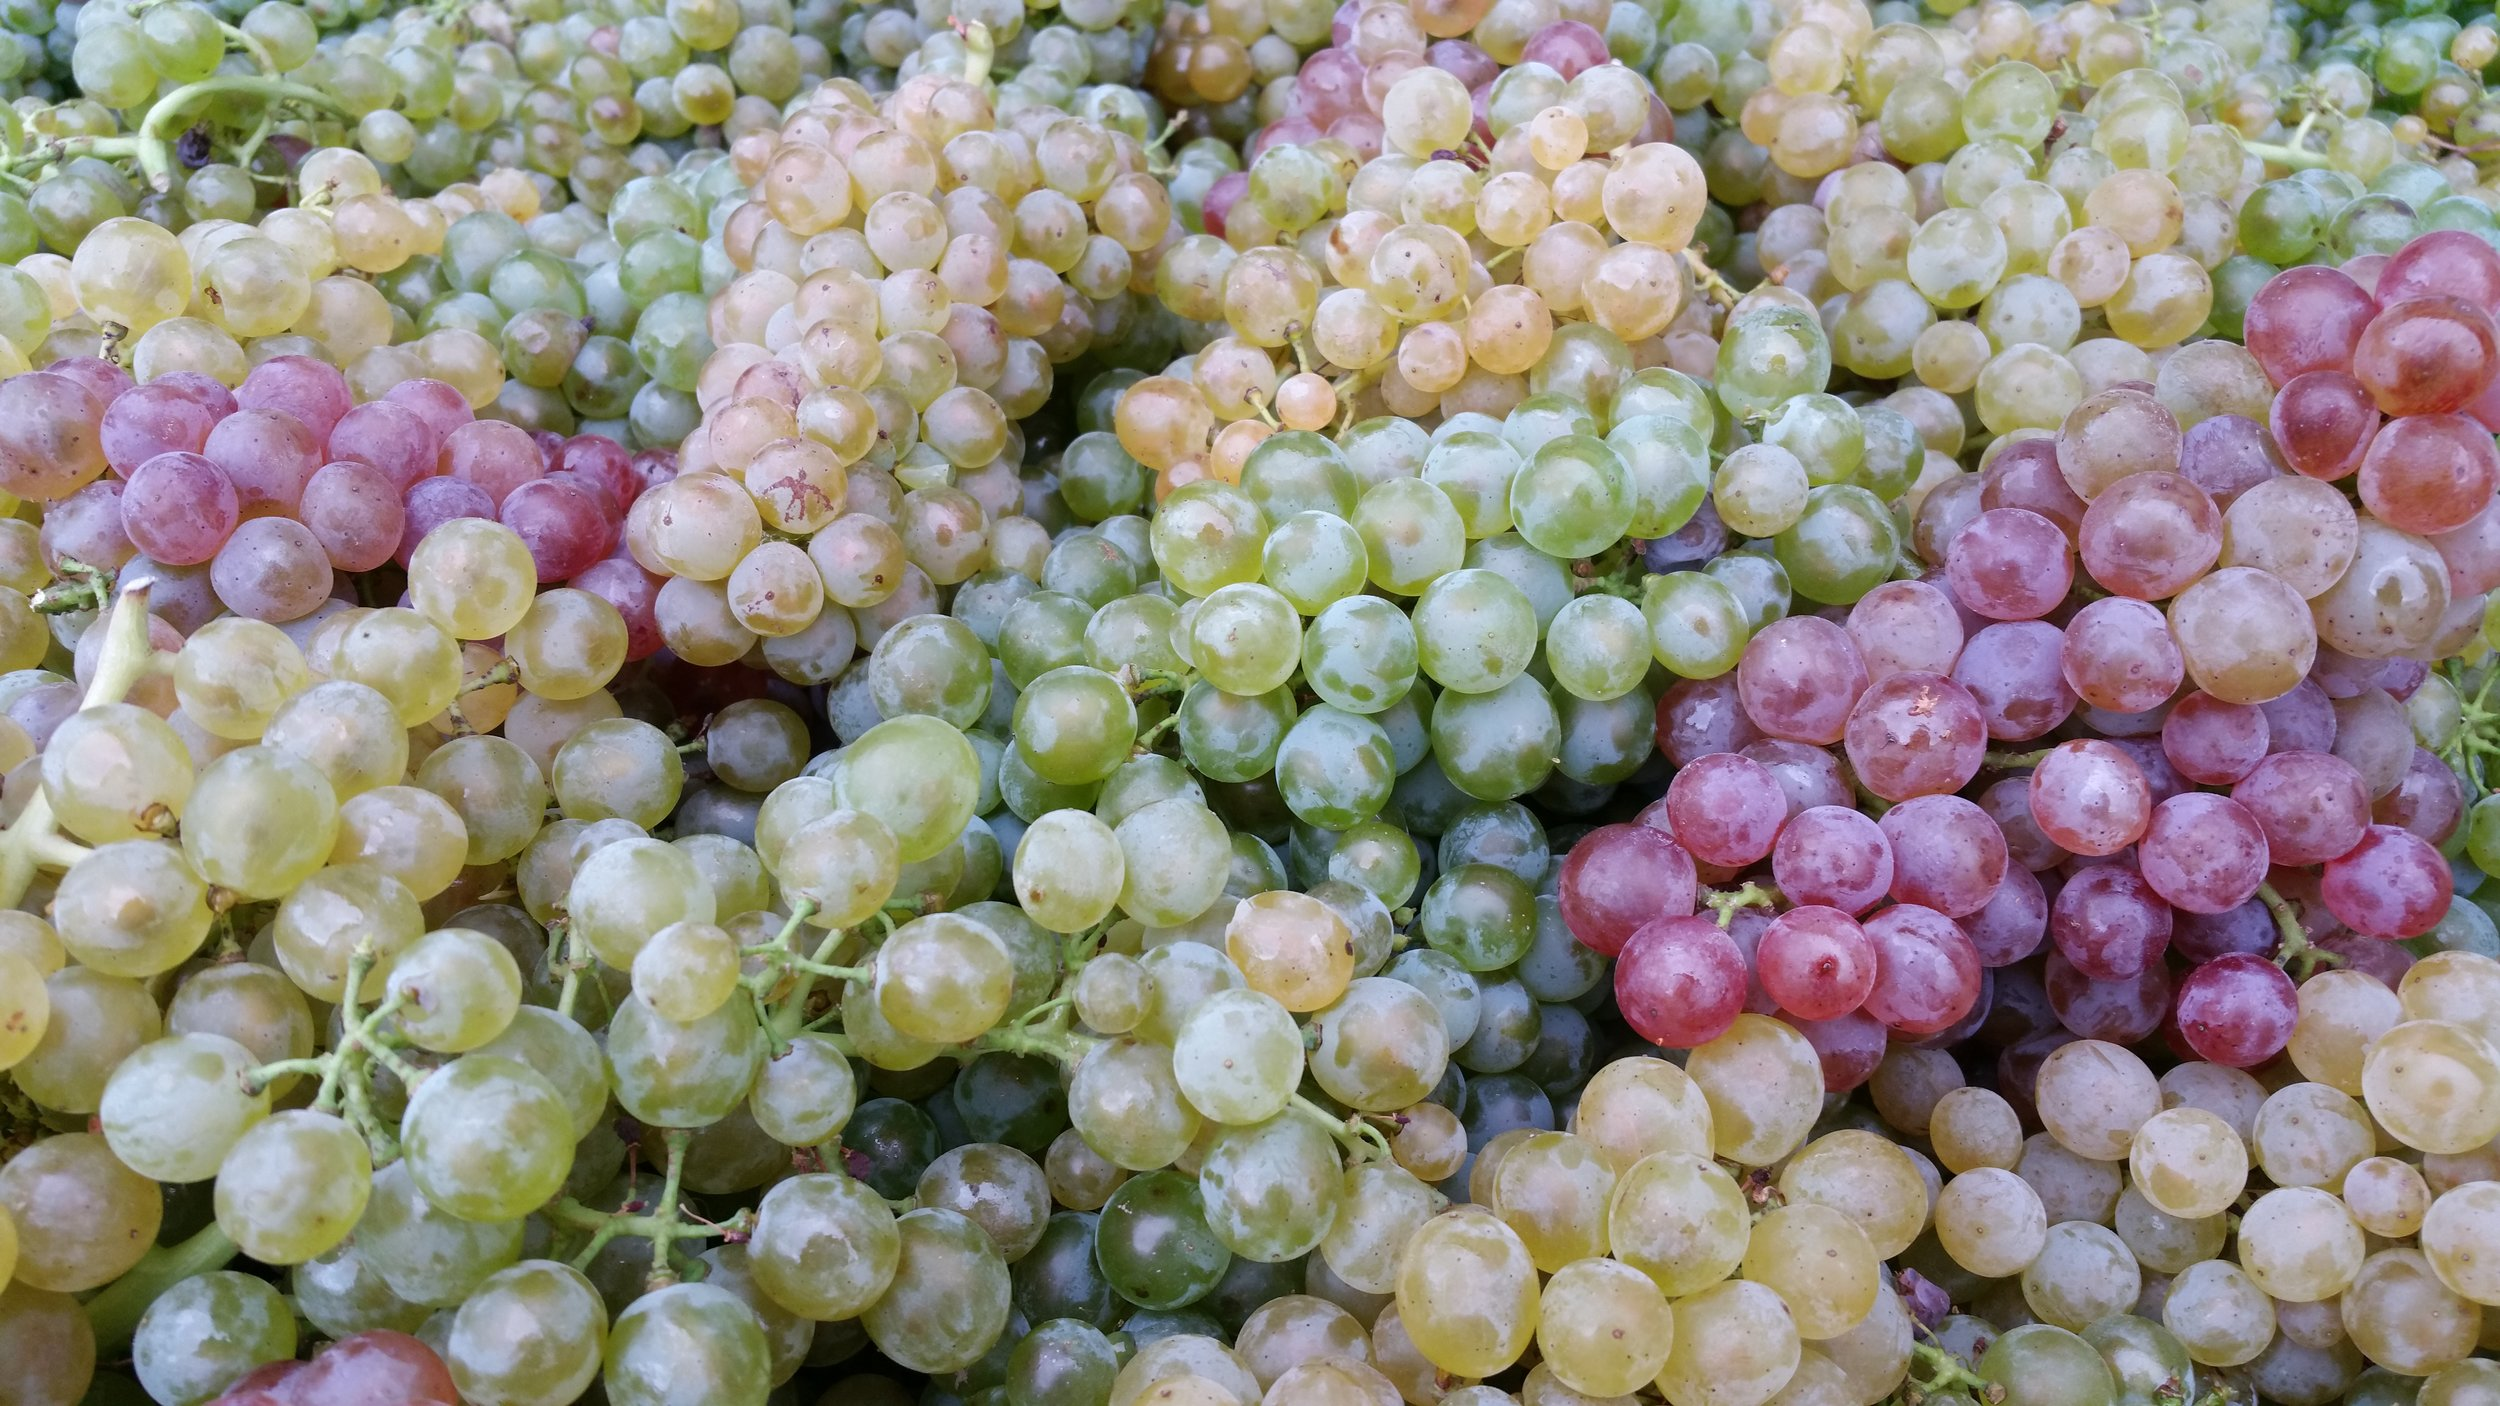 Lovely field blend of grapes (Photo credit: Groiss)